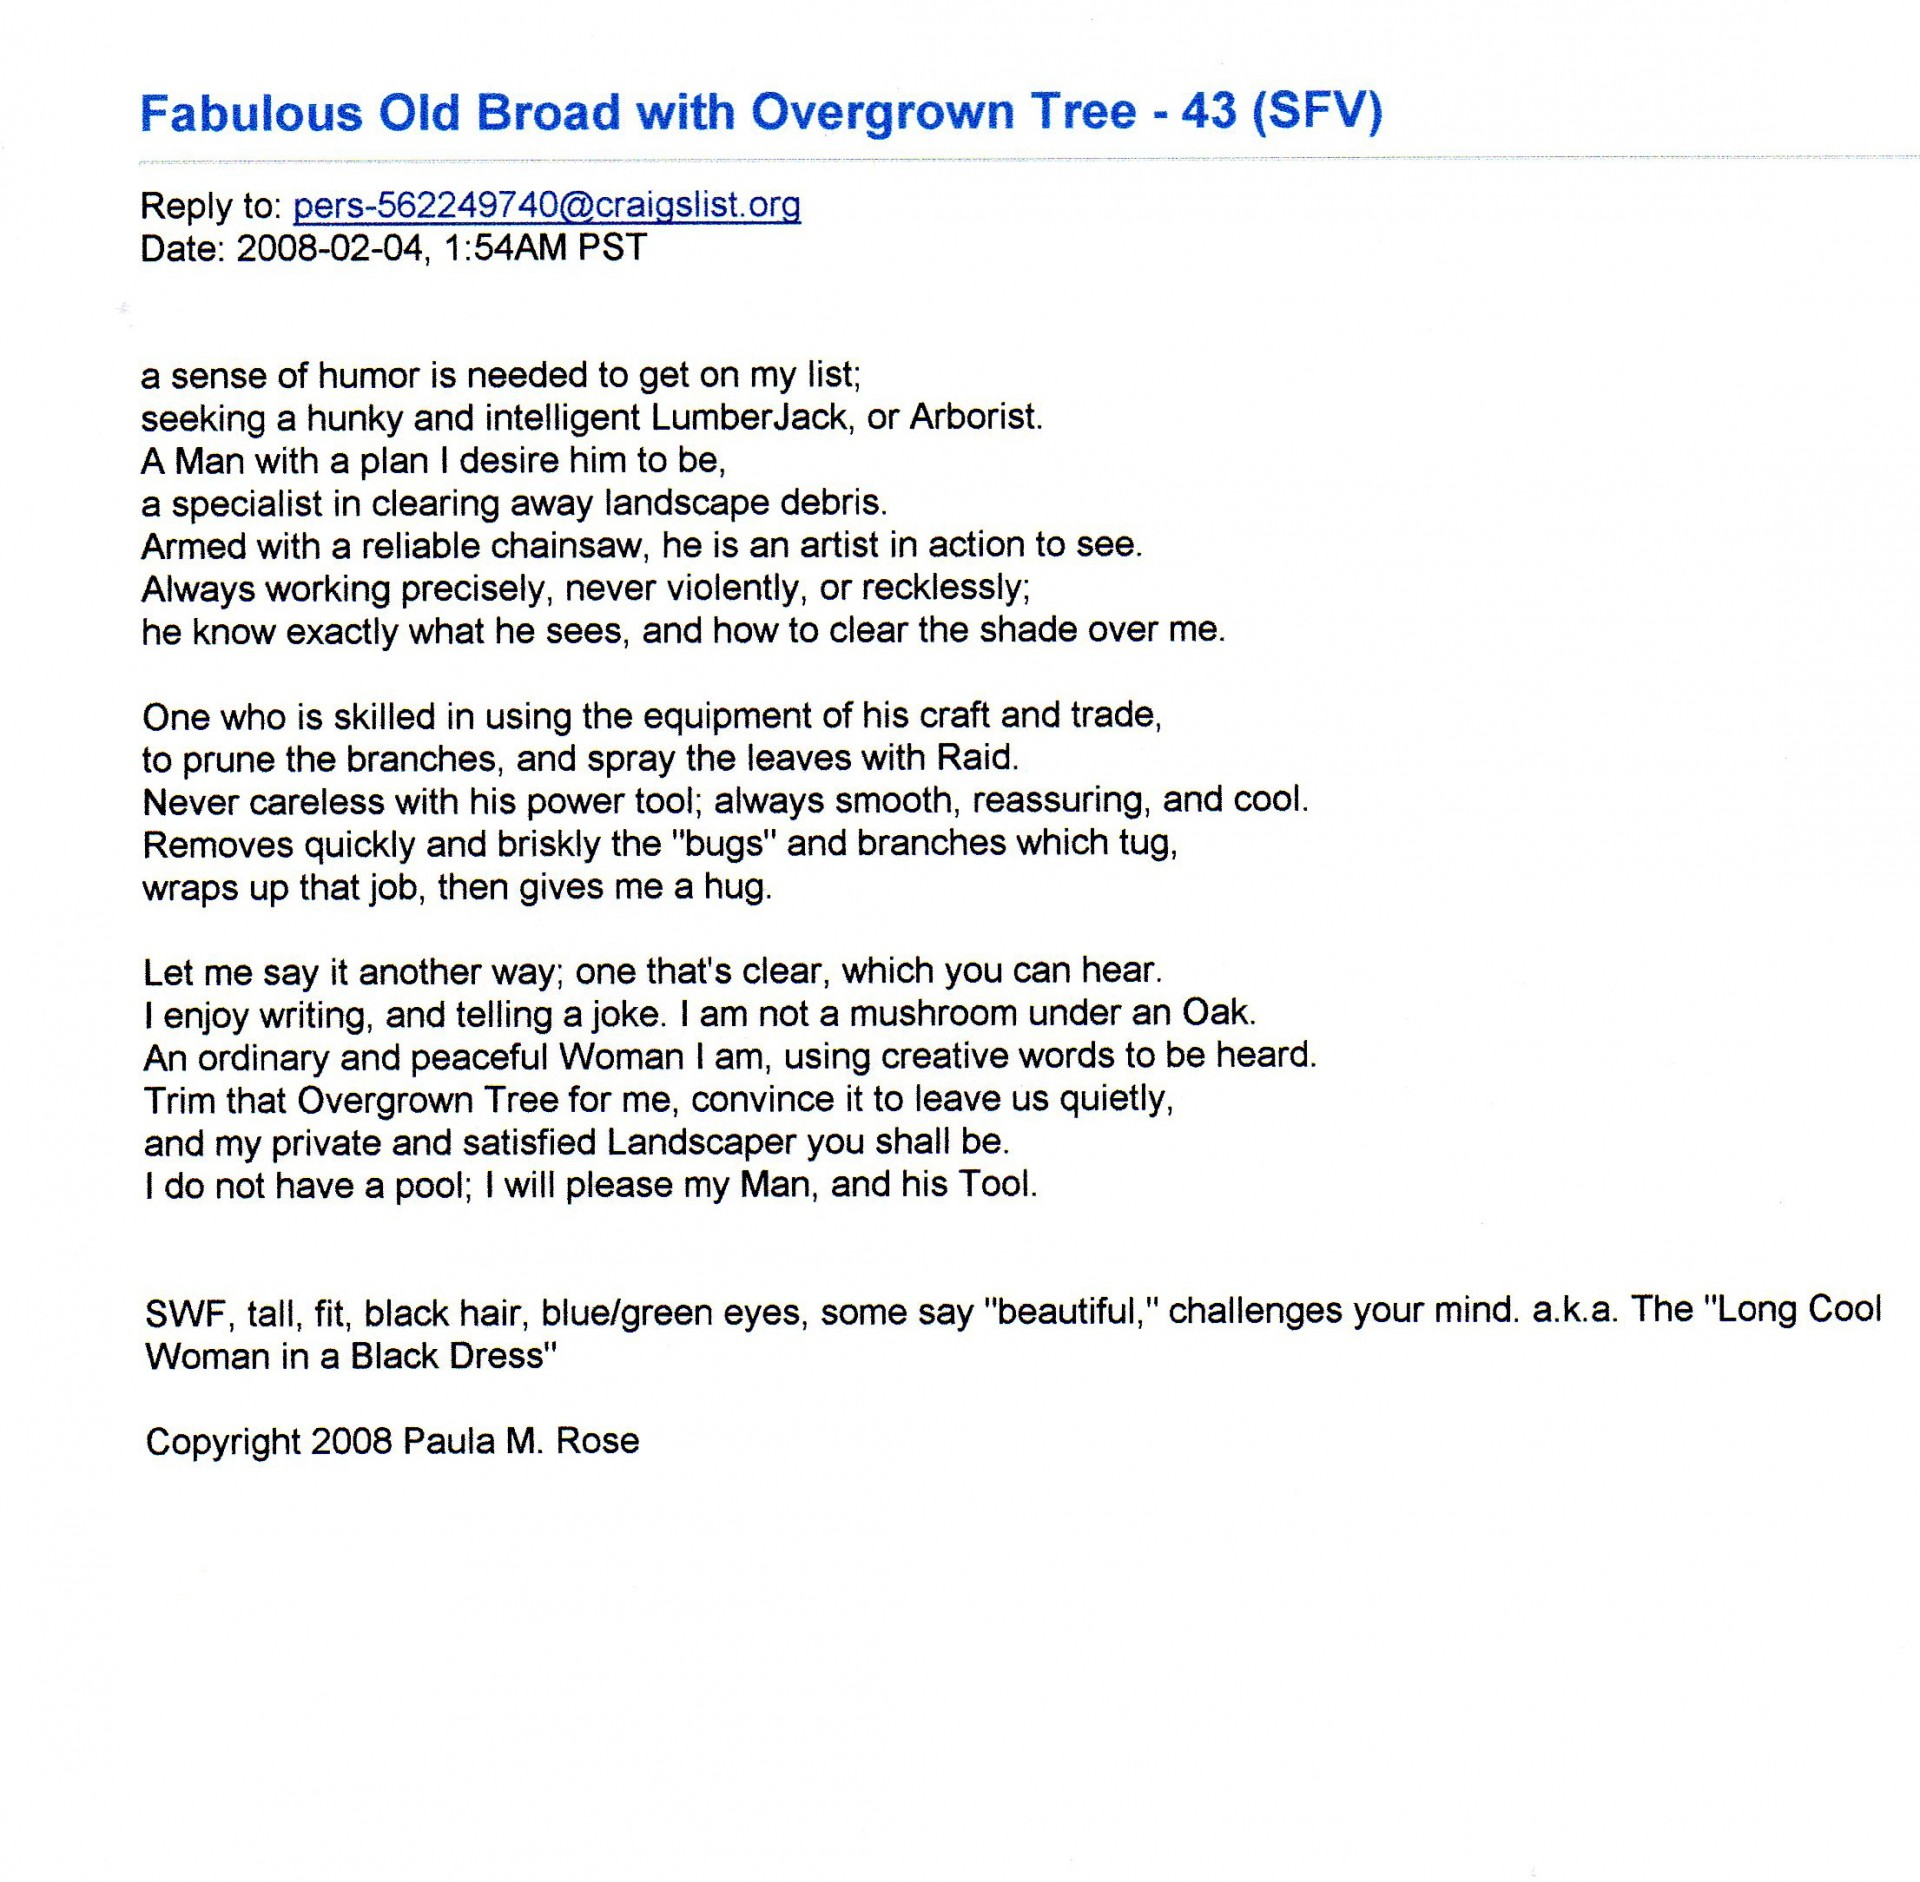 015 Poem 30 Fabulous Old Broad Do My Essay For Me Impressive Write Please Free Online Custom Cheap 1920